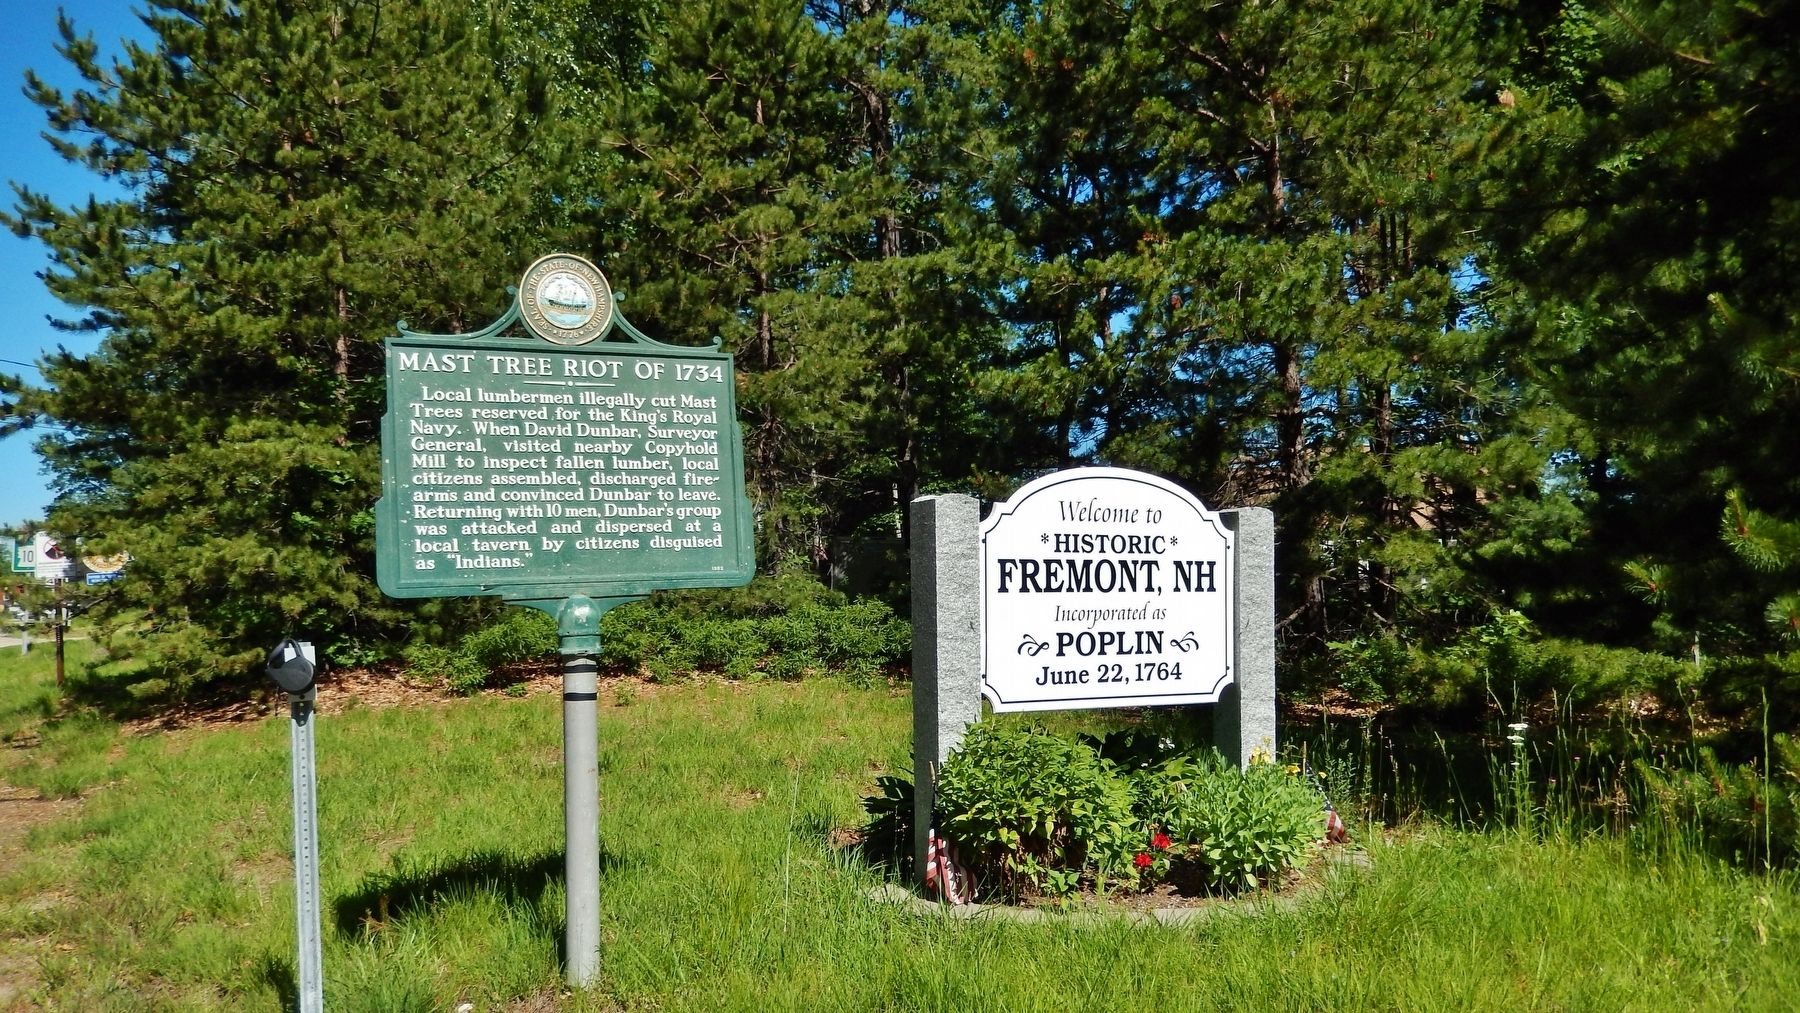 Mast Tree Riot of 1734 Marker (<i>wide view</i>) image. Click for full size.